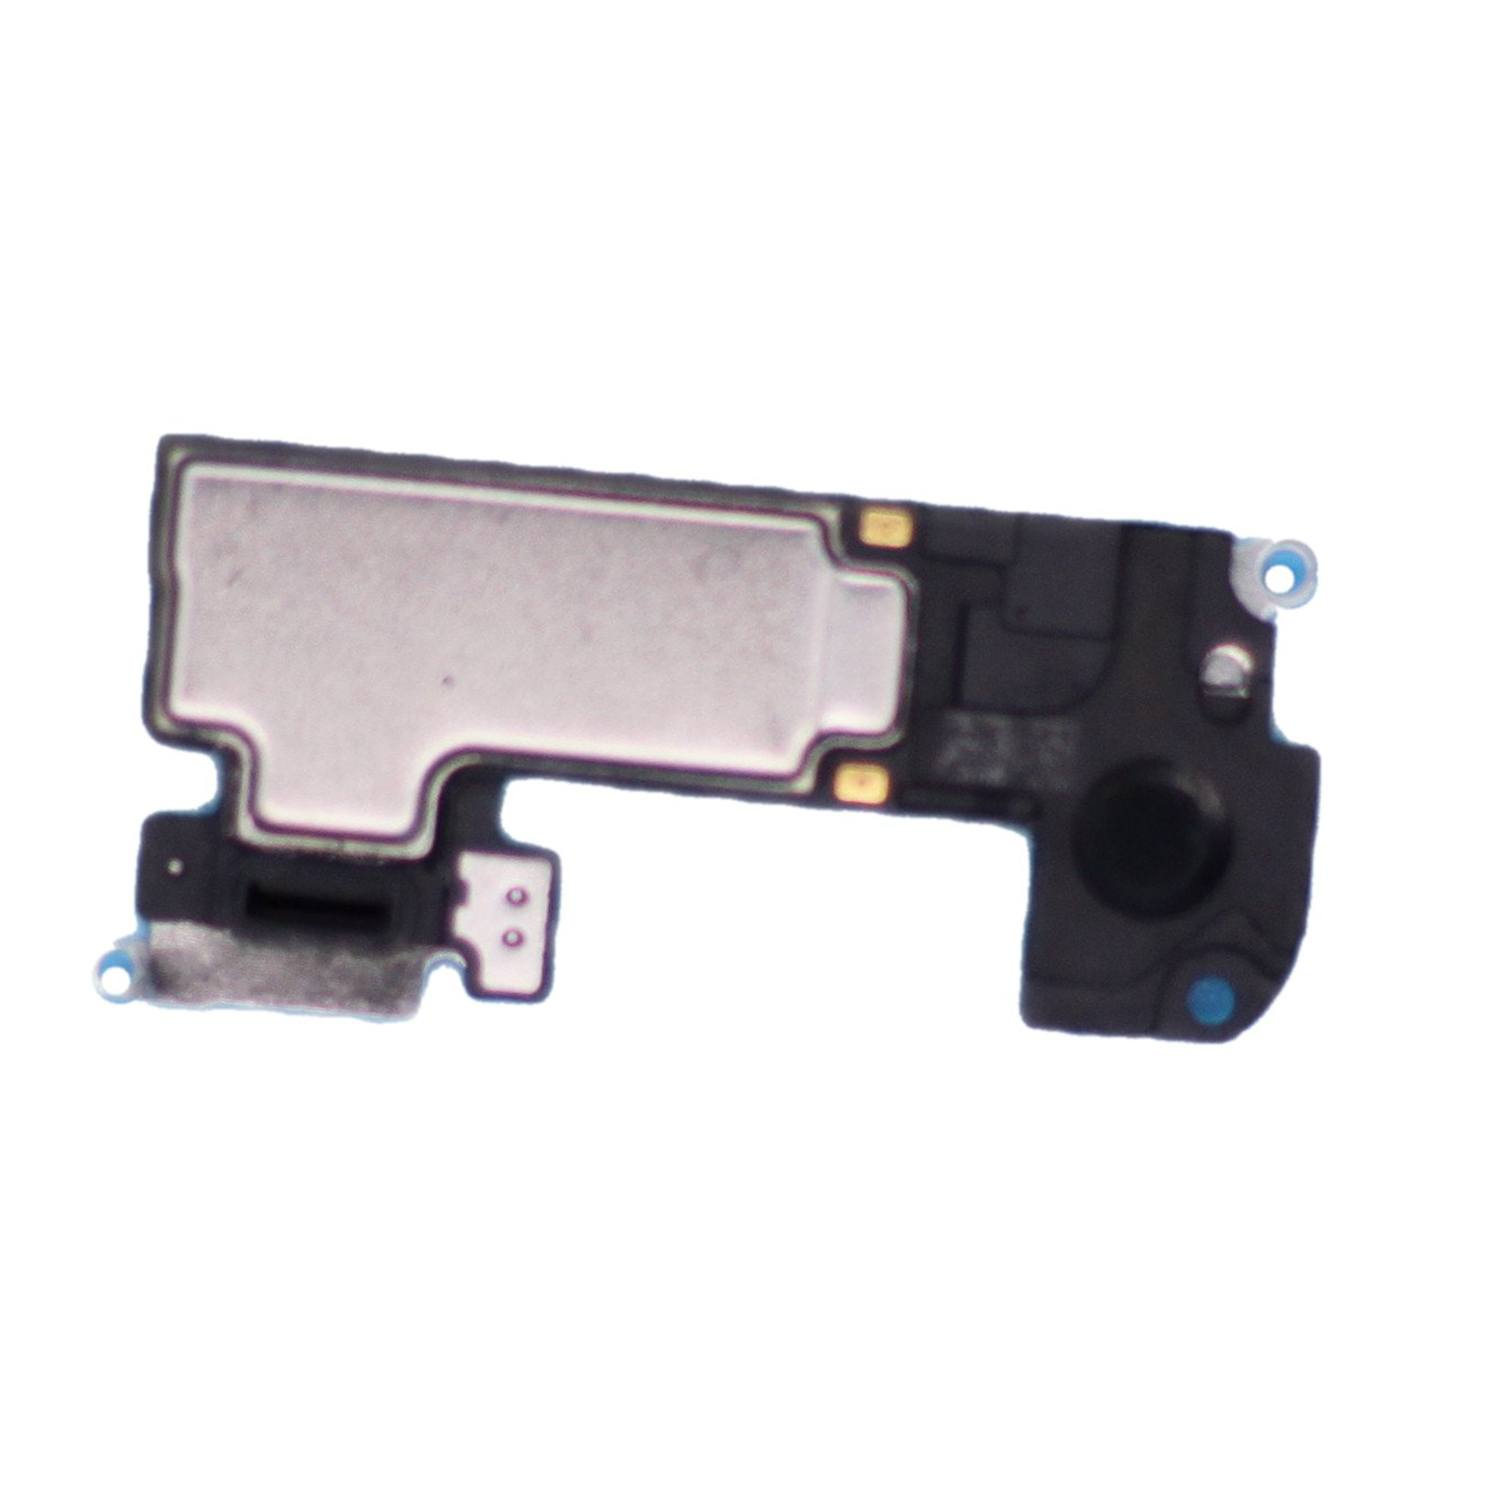 Ear Piece Speaker replacement for iPhone XS A1920 A2097 A2098 A2100 Pic0